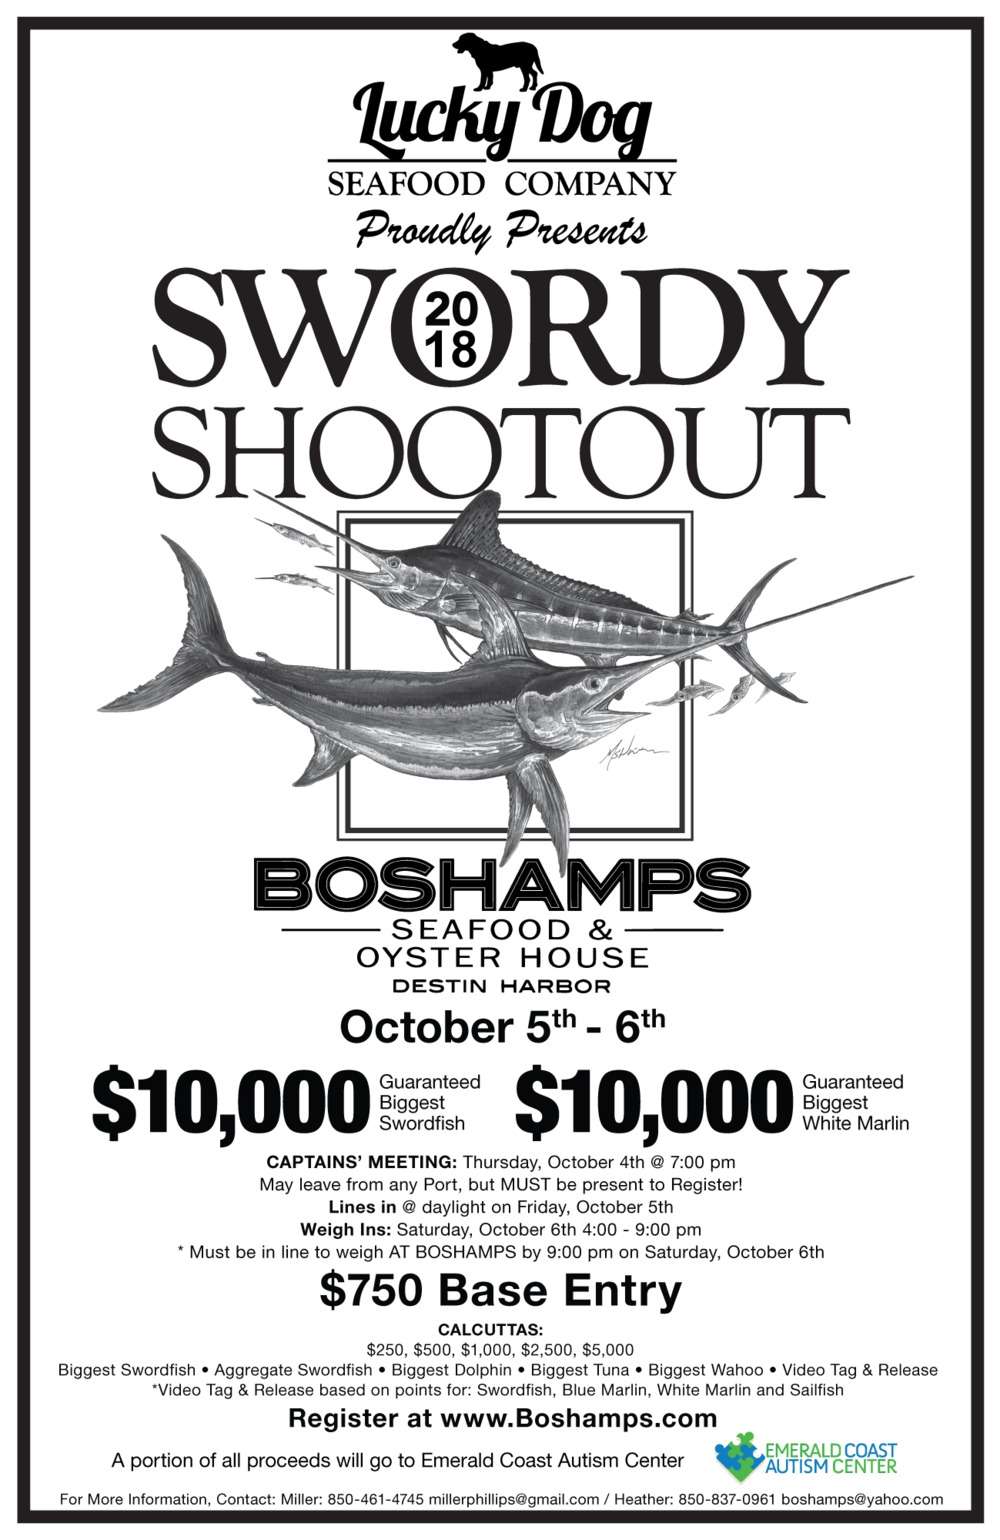 2018-SWORDY-Shootout-Boshamps-Destin-FL.png